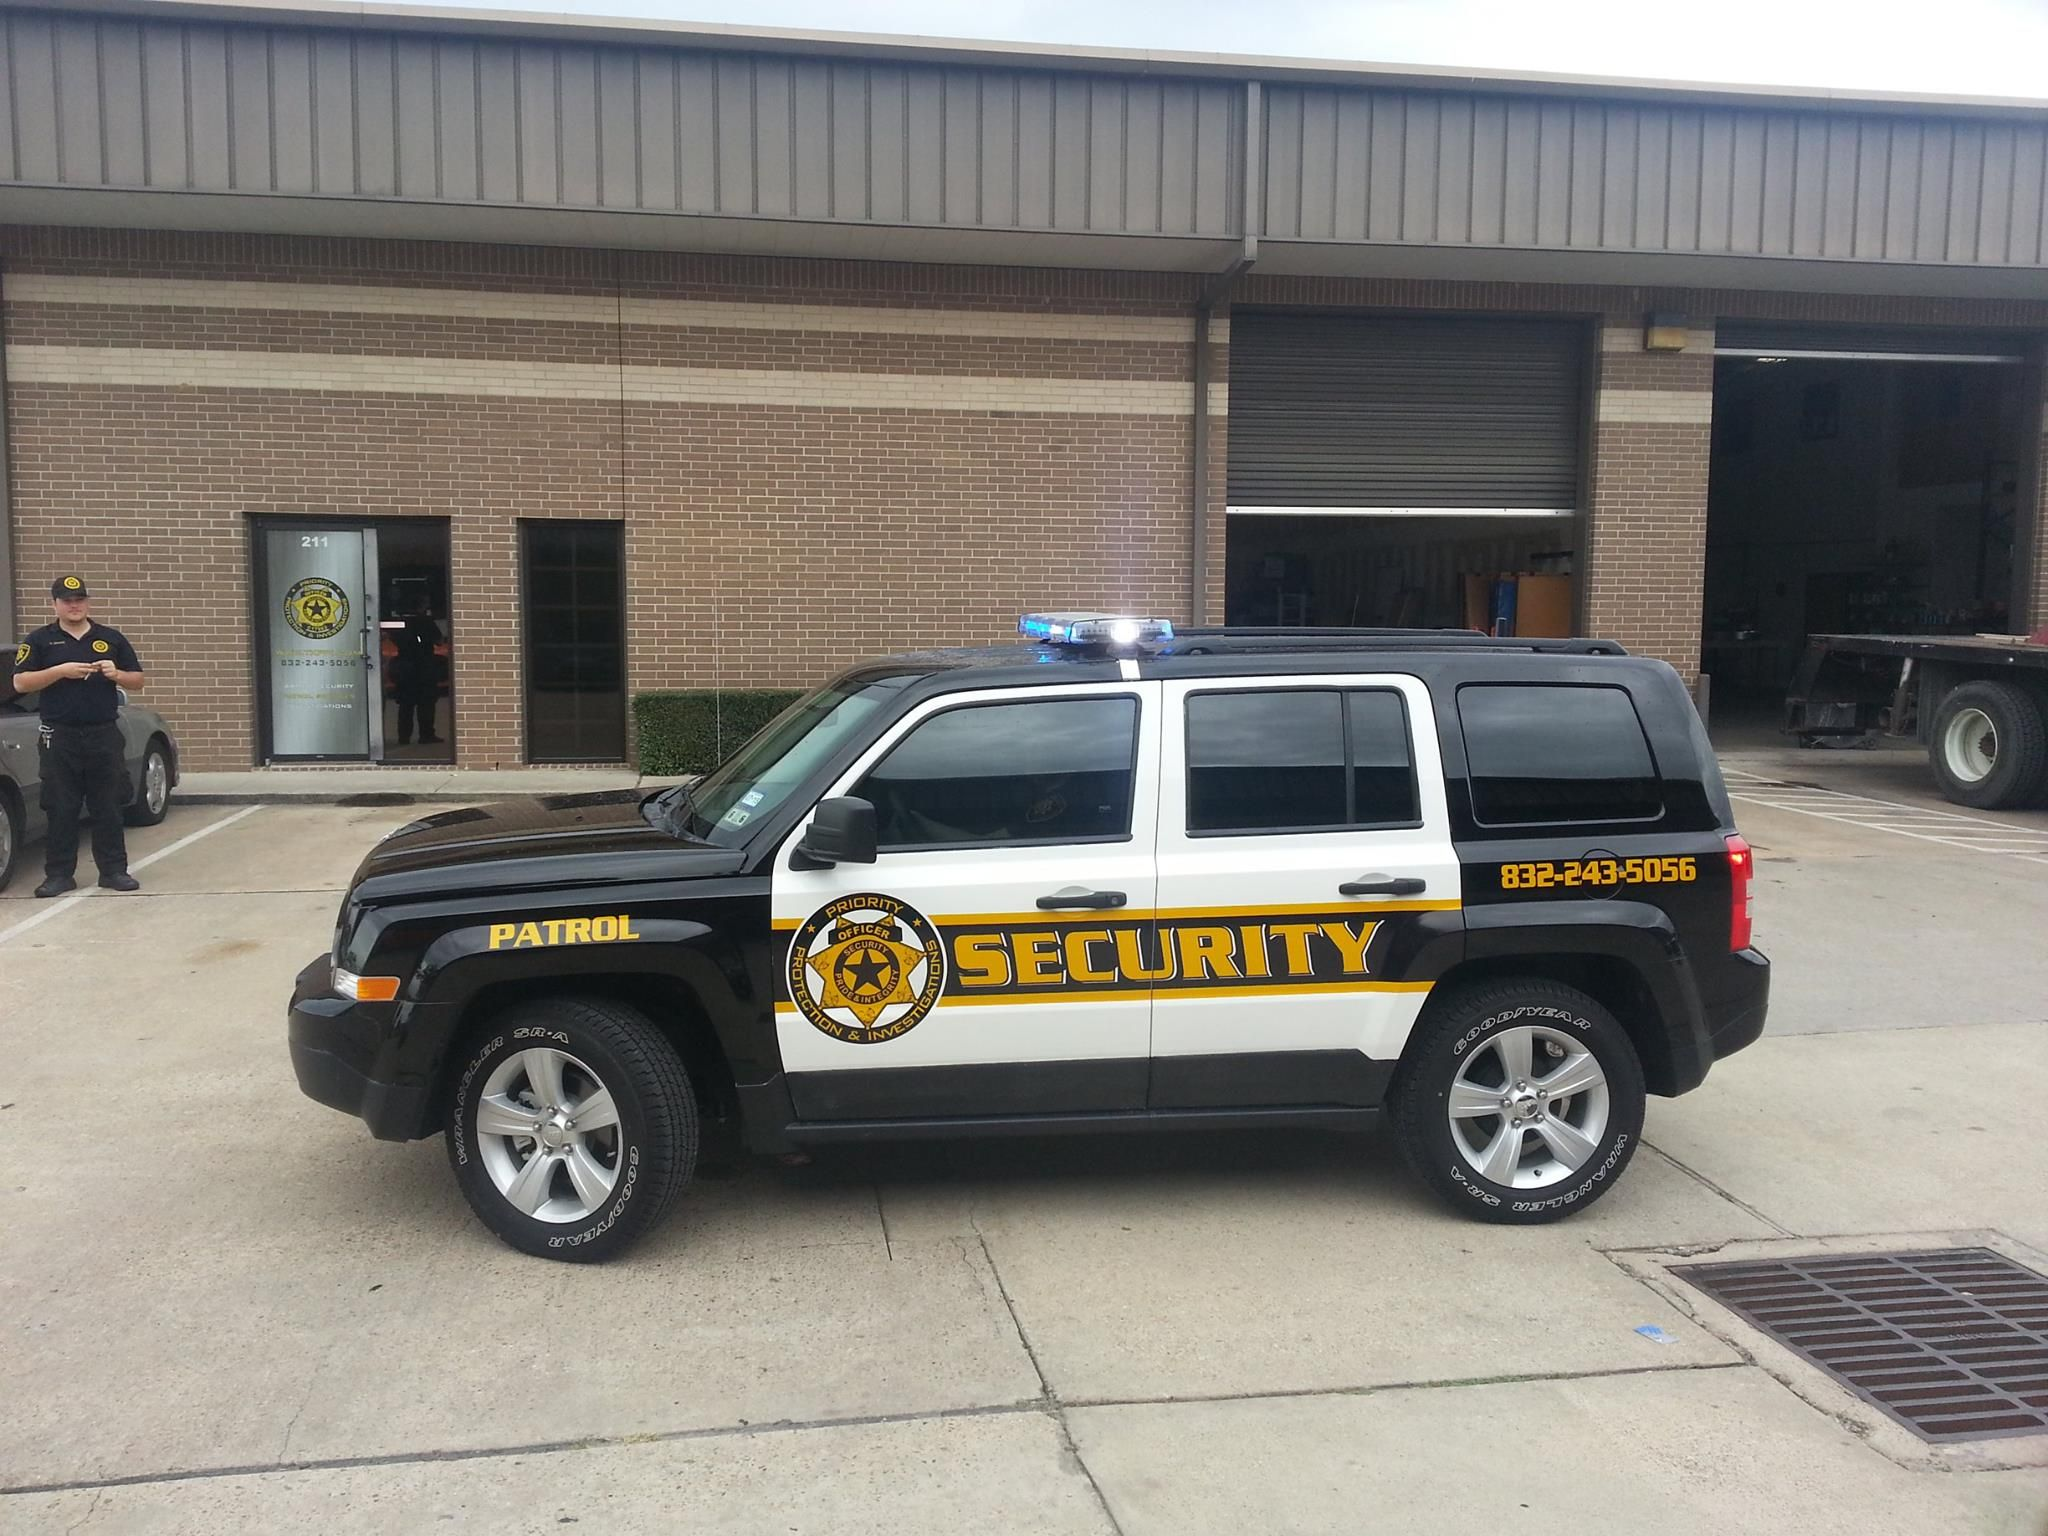 Make yourself safe and secure by using the services of the security vehicle aloadofball Gallery